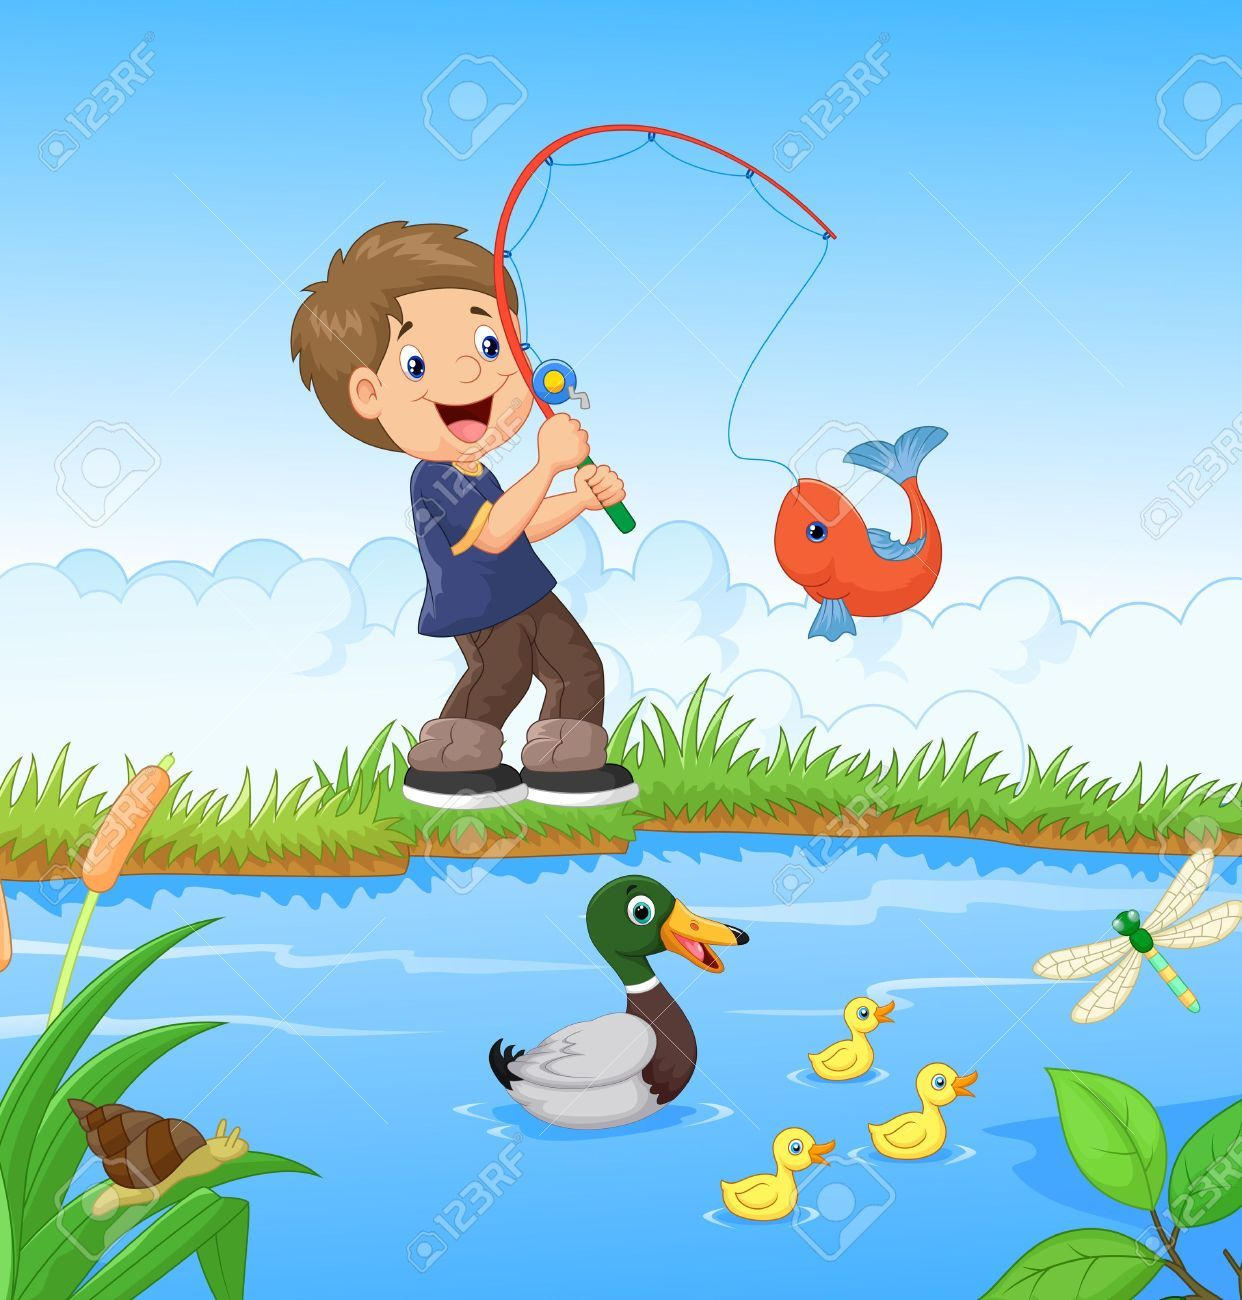 Image Result For Little Boy Fishing Cartoon Boy Fishing Fish Painting Baby Bedtime